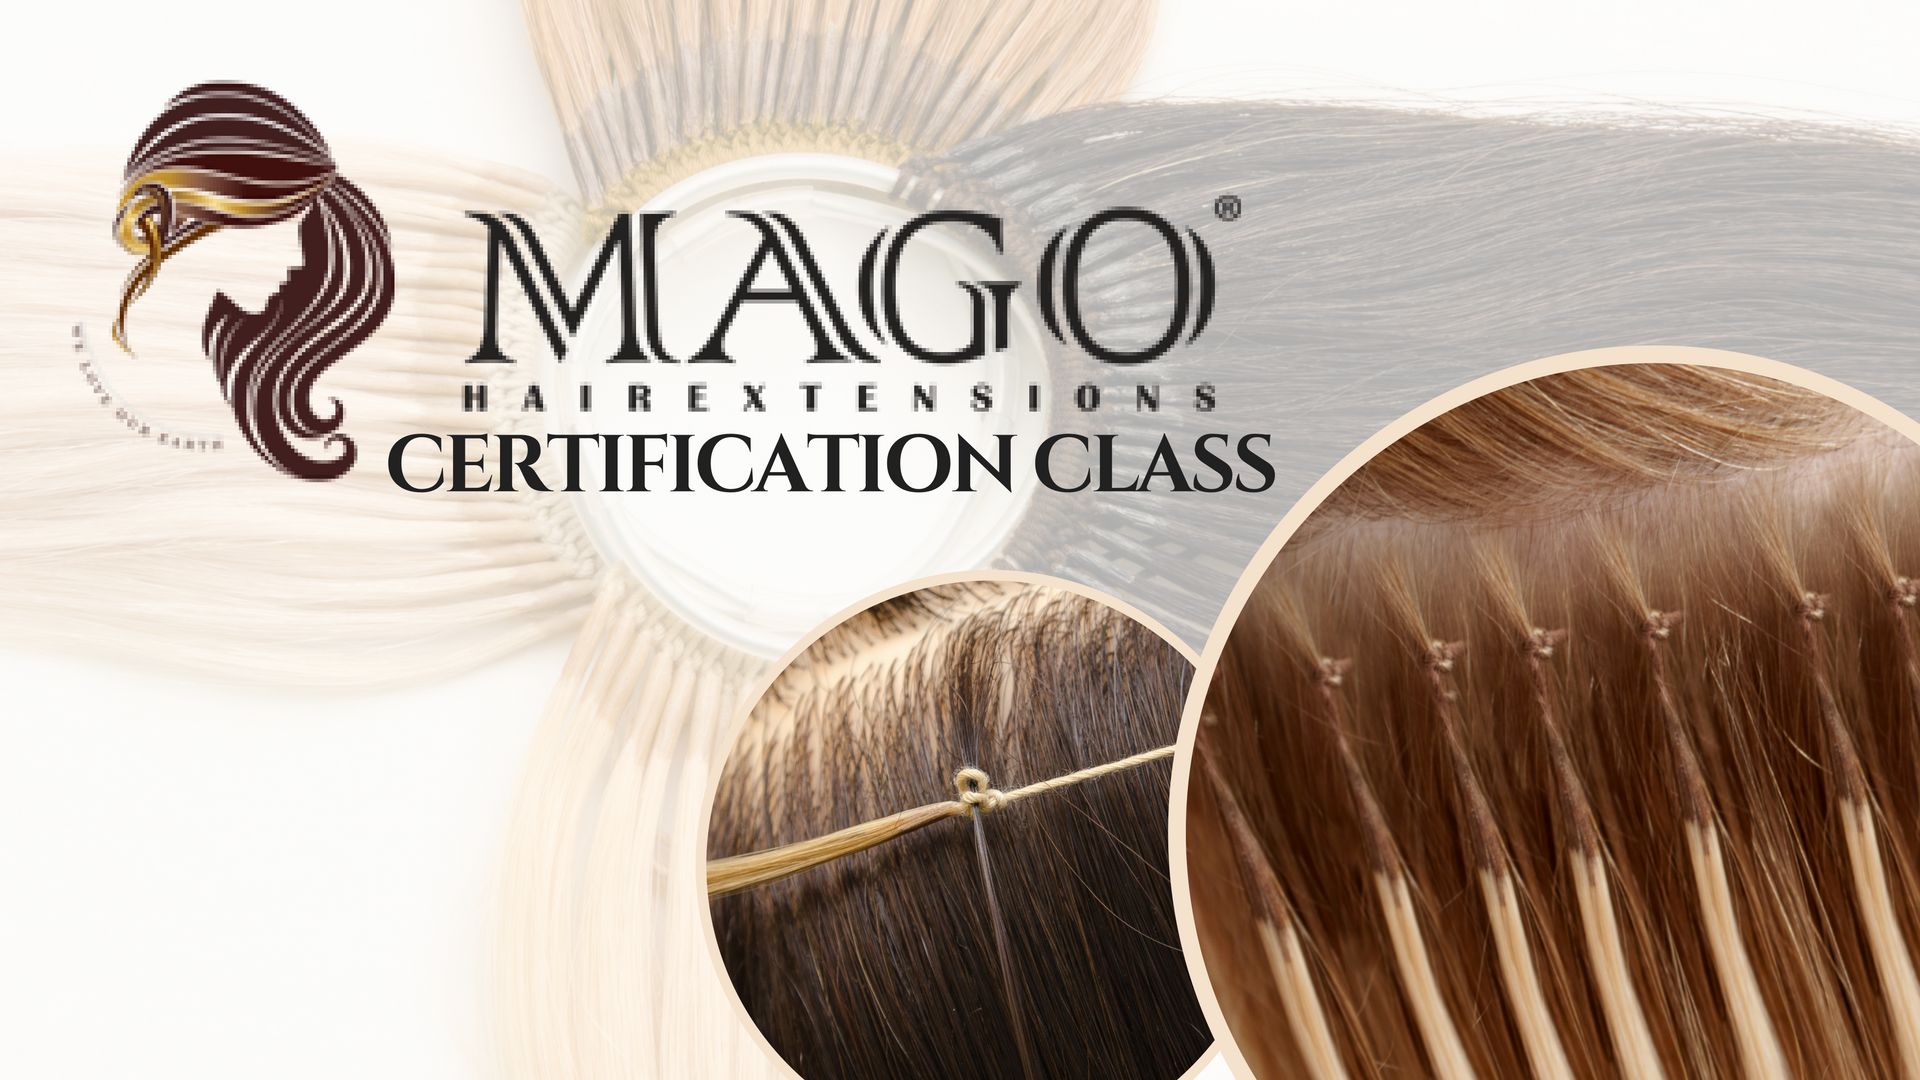 Mago Hair Extensions Certification Class Event Modern Salon